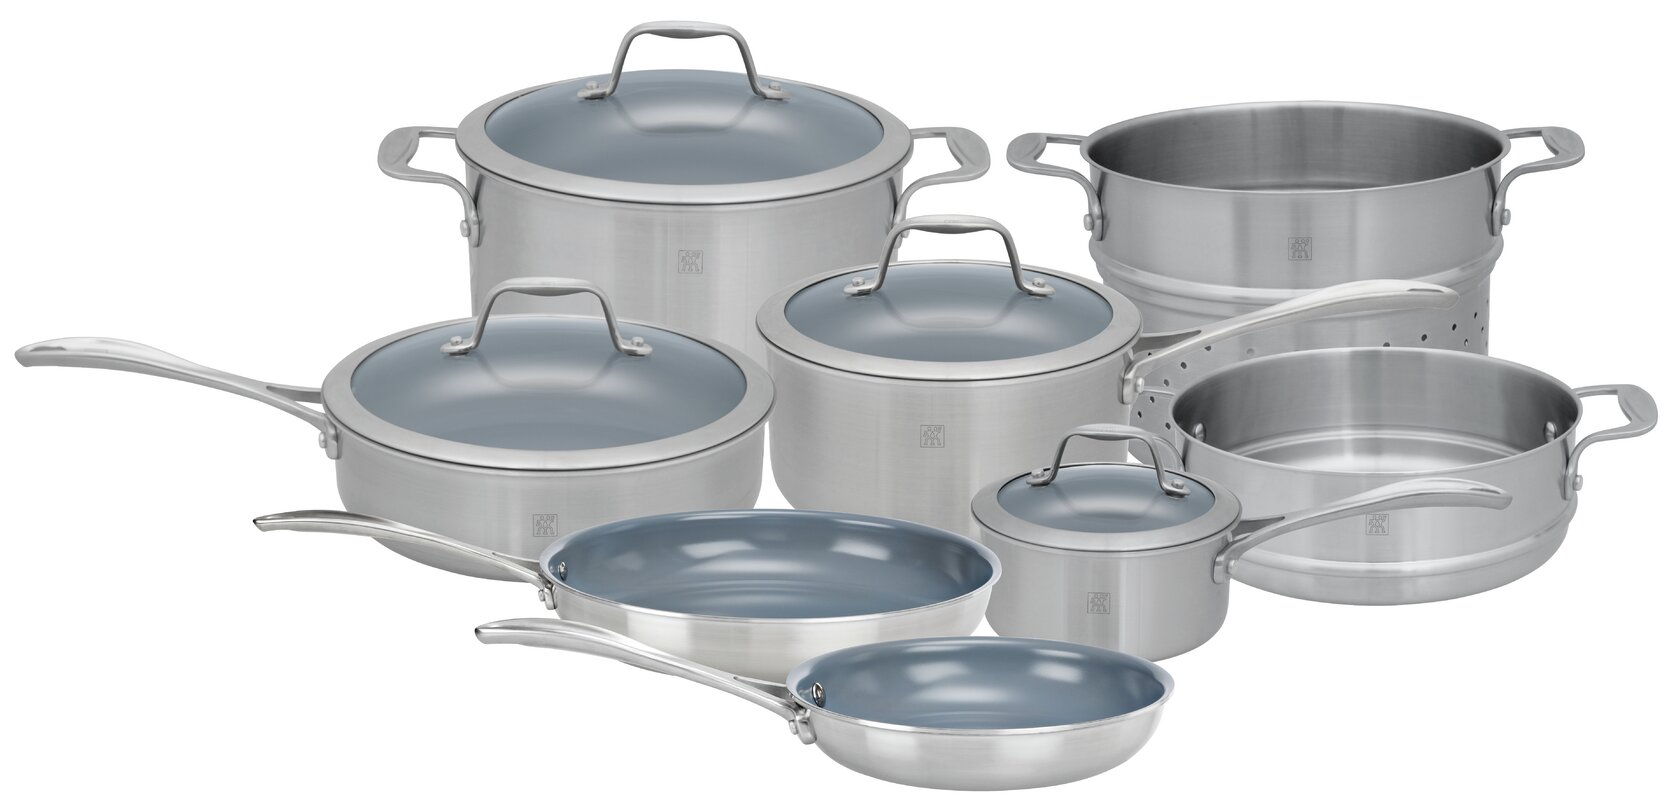 Zwilling JA Henckels Spirit 12 Piece 3 Ply Non-Stick Stainless ...